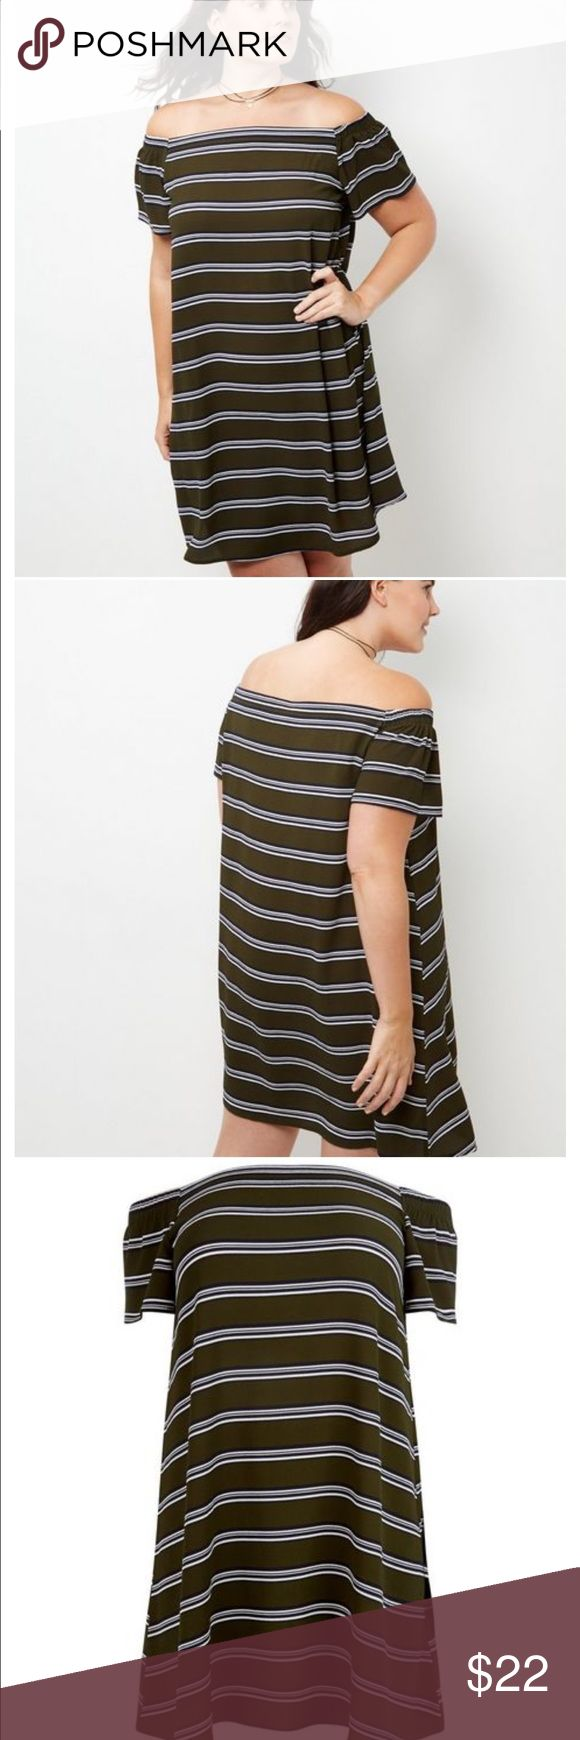 Olive green striped Bardot dress Go from day to night in this khaki stripe bardot neck dress. The ideal addition to your weekend wardrobe.  - All over stripe print - Bardot neckline - Simple short sleeves - Casual fit that is true to size - Mini length New Look Dresses Mini